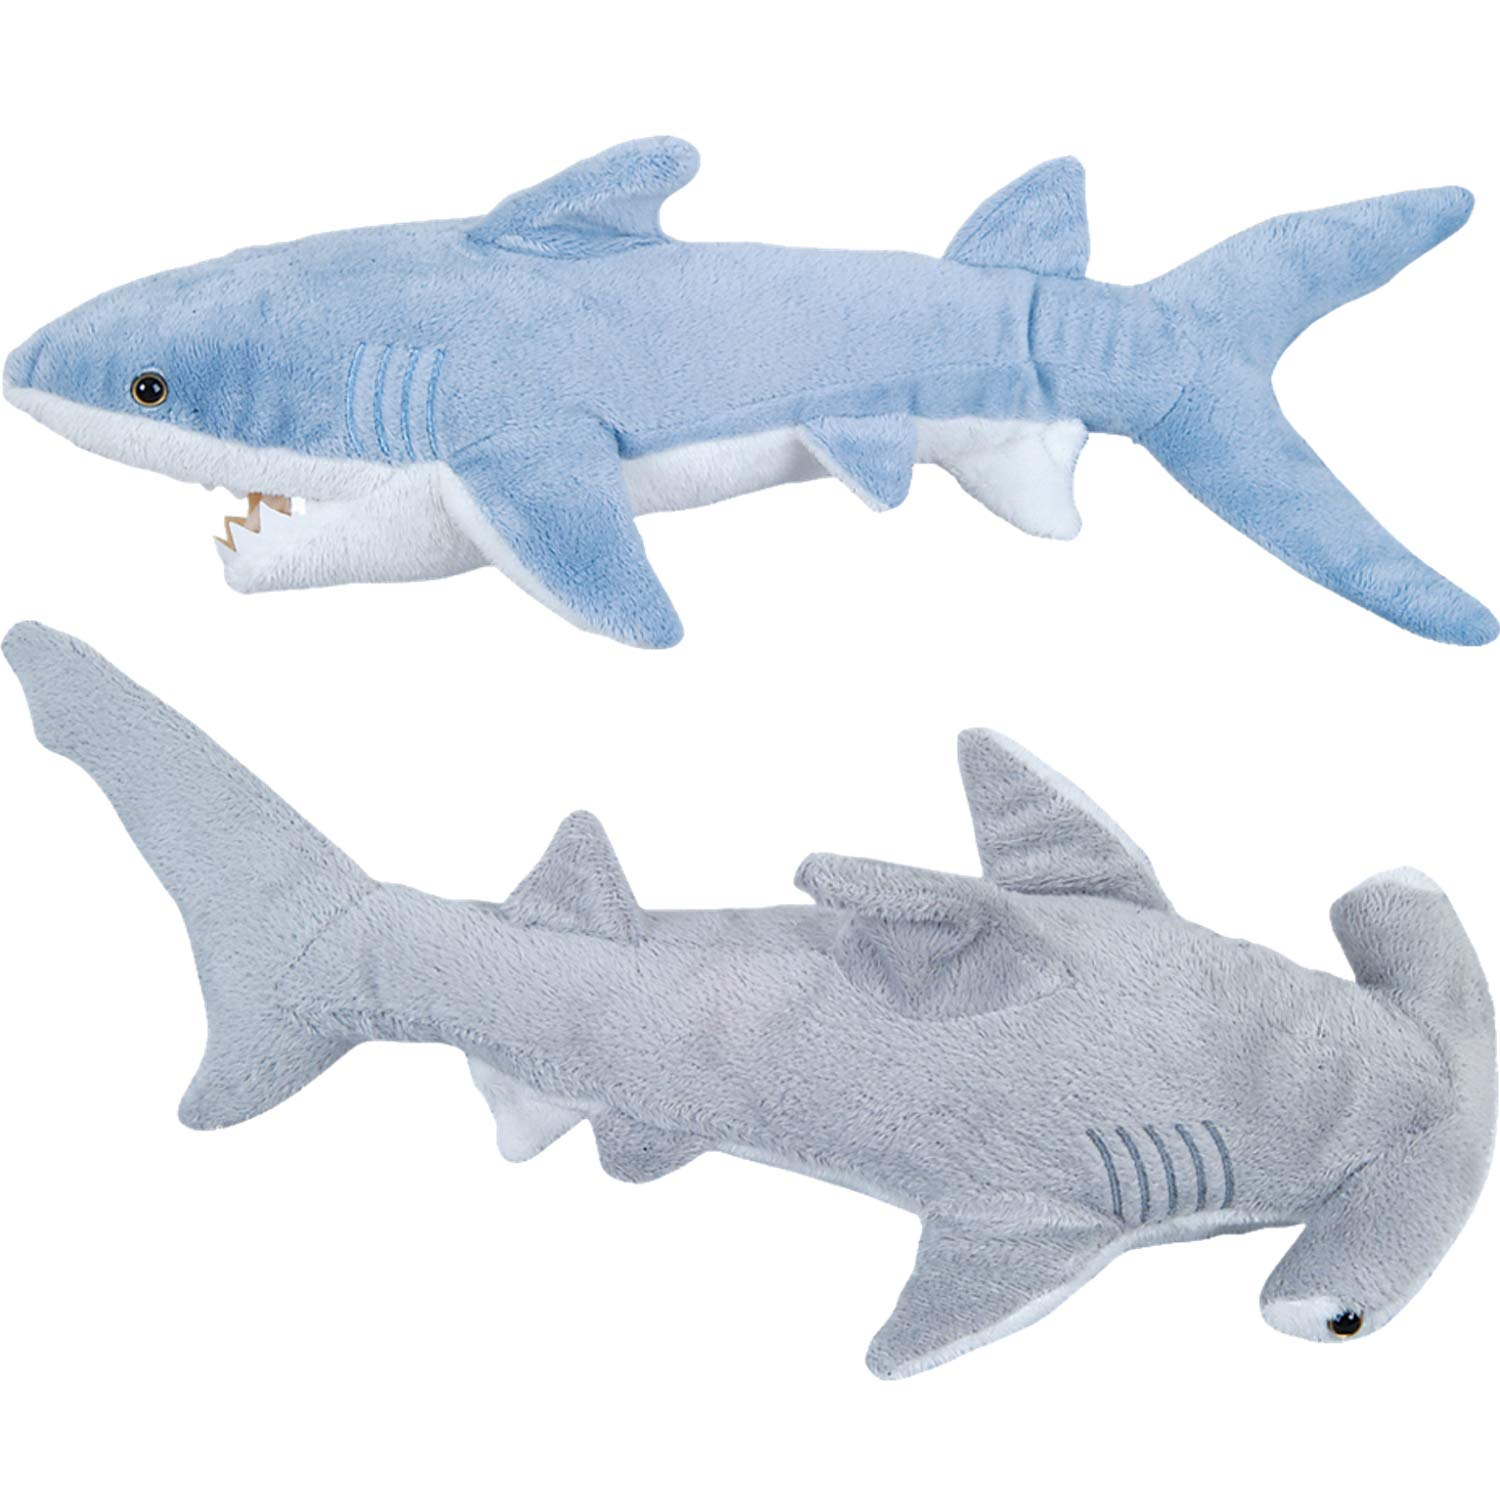 Bedwina Stuffed Animal Sharks - Pack of 2 Large, 14 inch Mako & 13 inch Hammerhead Plush Shark Toys, Stuff Animals Toy Be Ready Shark Week, for Baby Toddlers & Kids